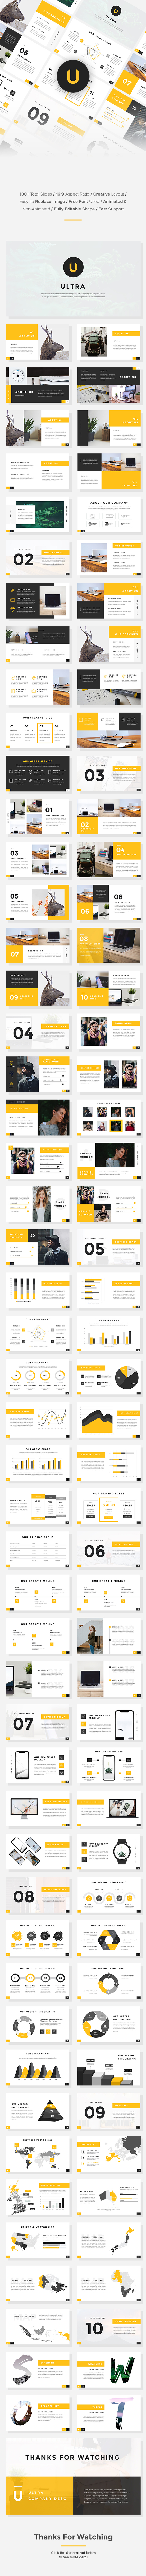 Ultra - Creative Google Slides Template - Google Slides Presentation Templates